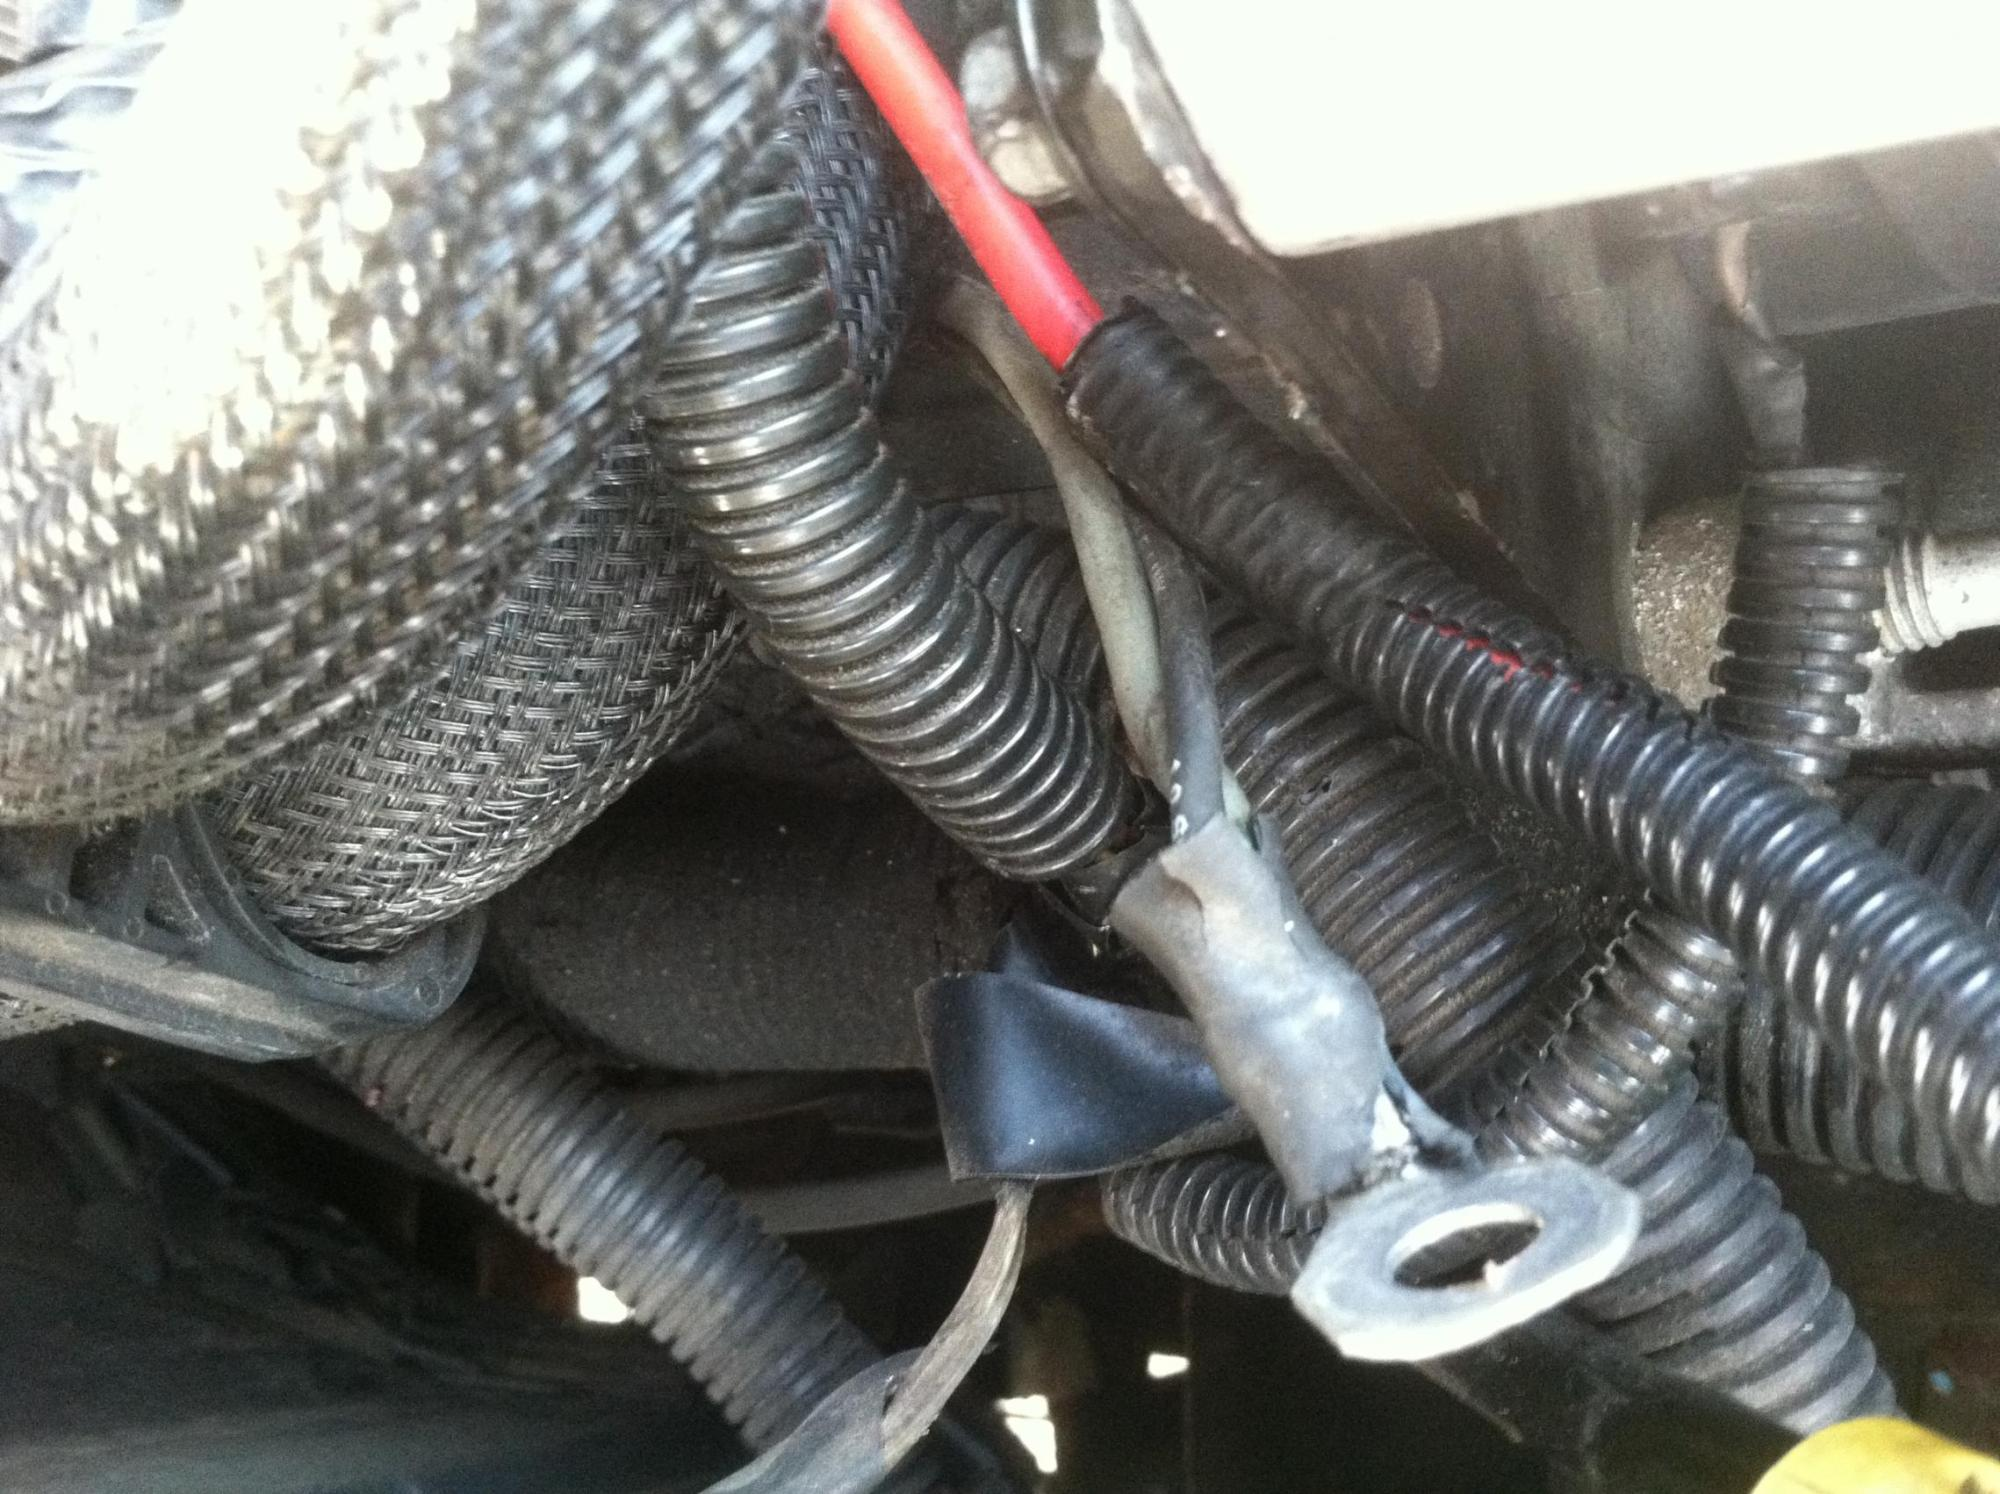 hight resolution of 96 alternator wiring img 1577 5b1 5d jpg